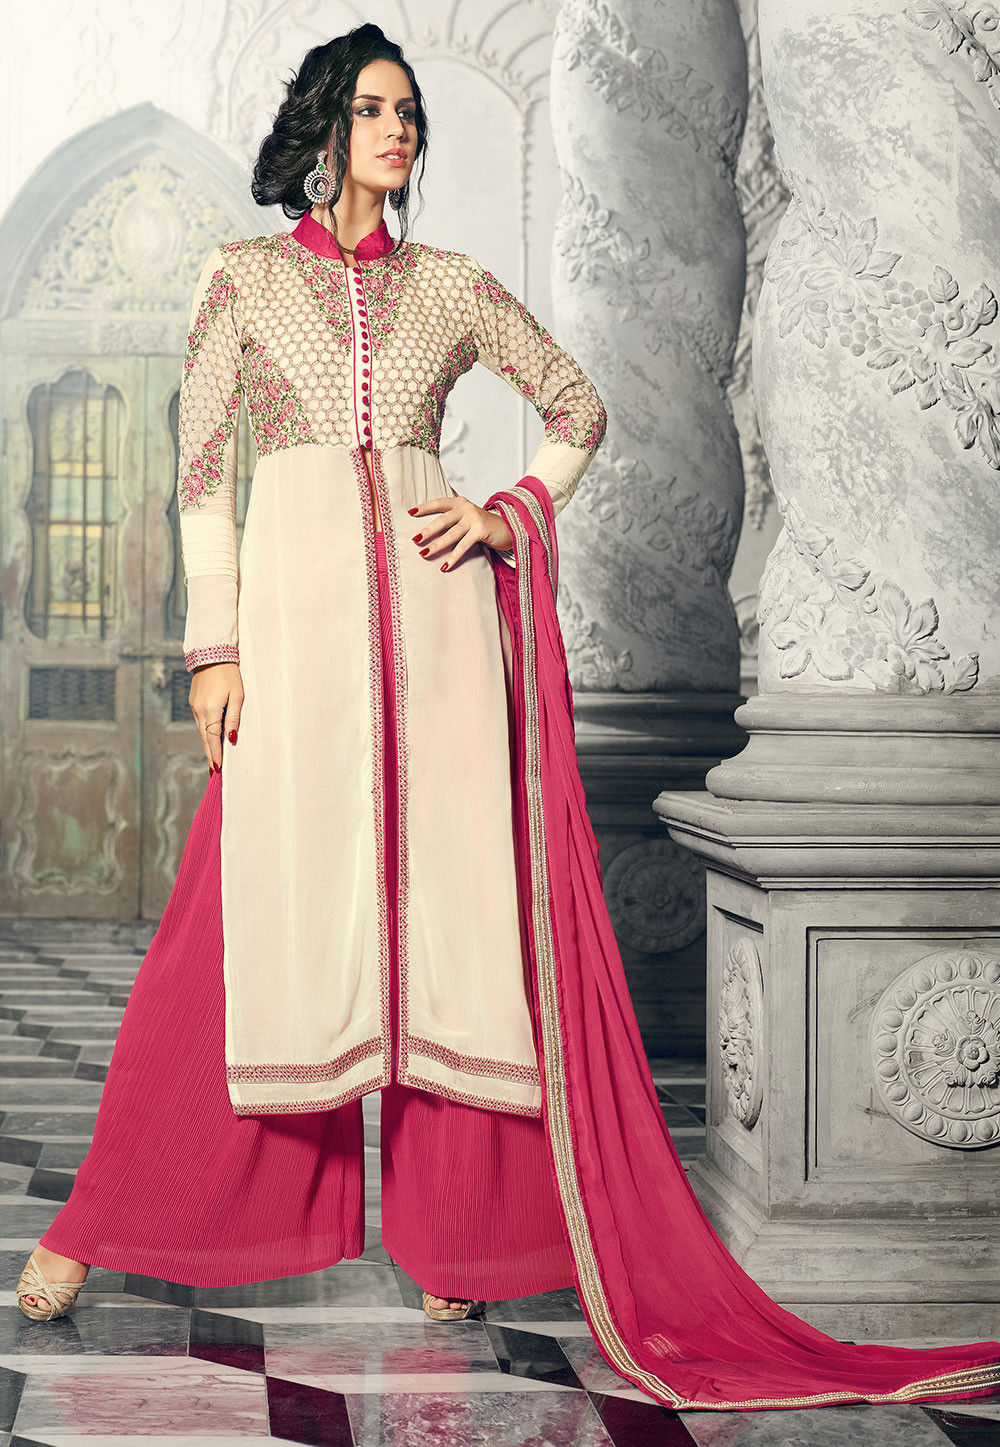 Embroidered Georgette Pakistani Style Suit in Cream